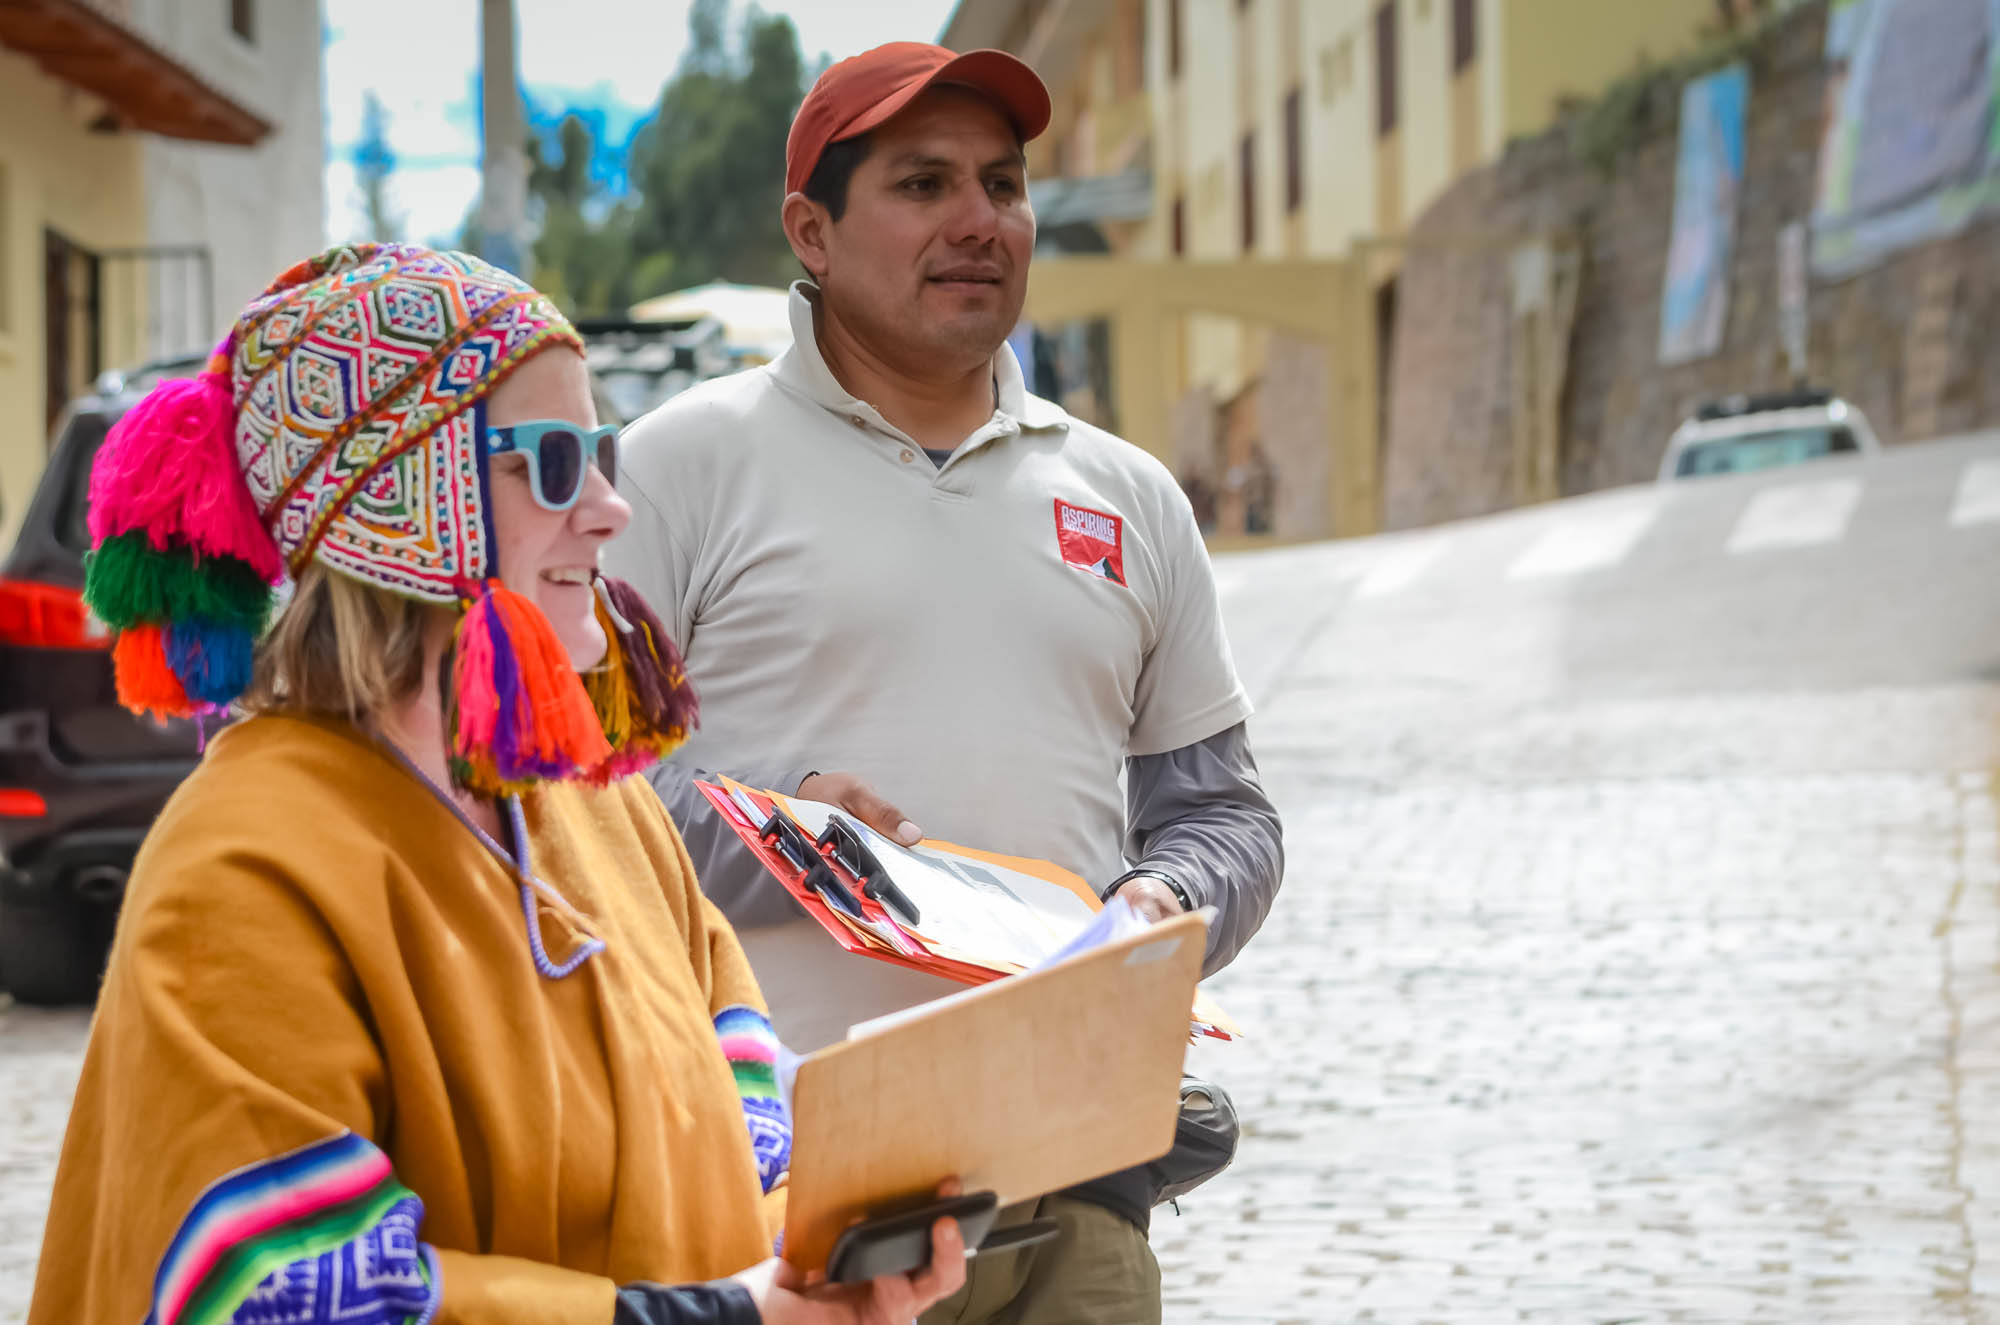 Co-founder Katy Shorthouse and guide Aldo Sanchez managing one of our private Peru tours